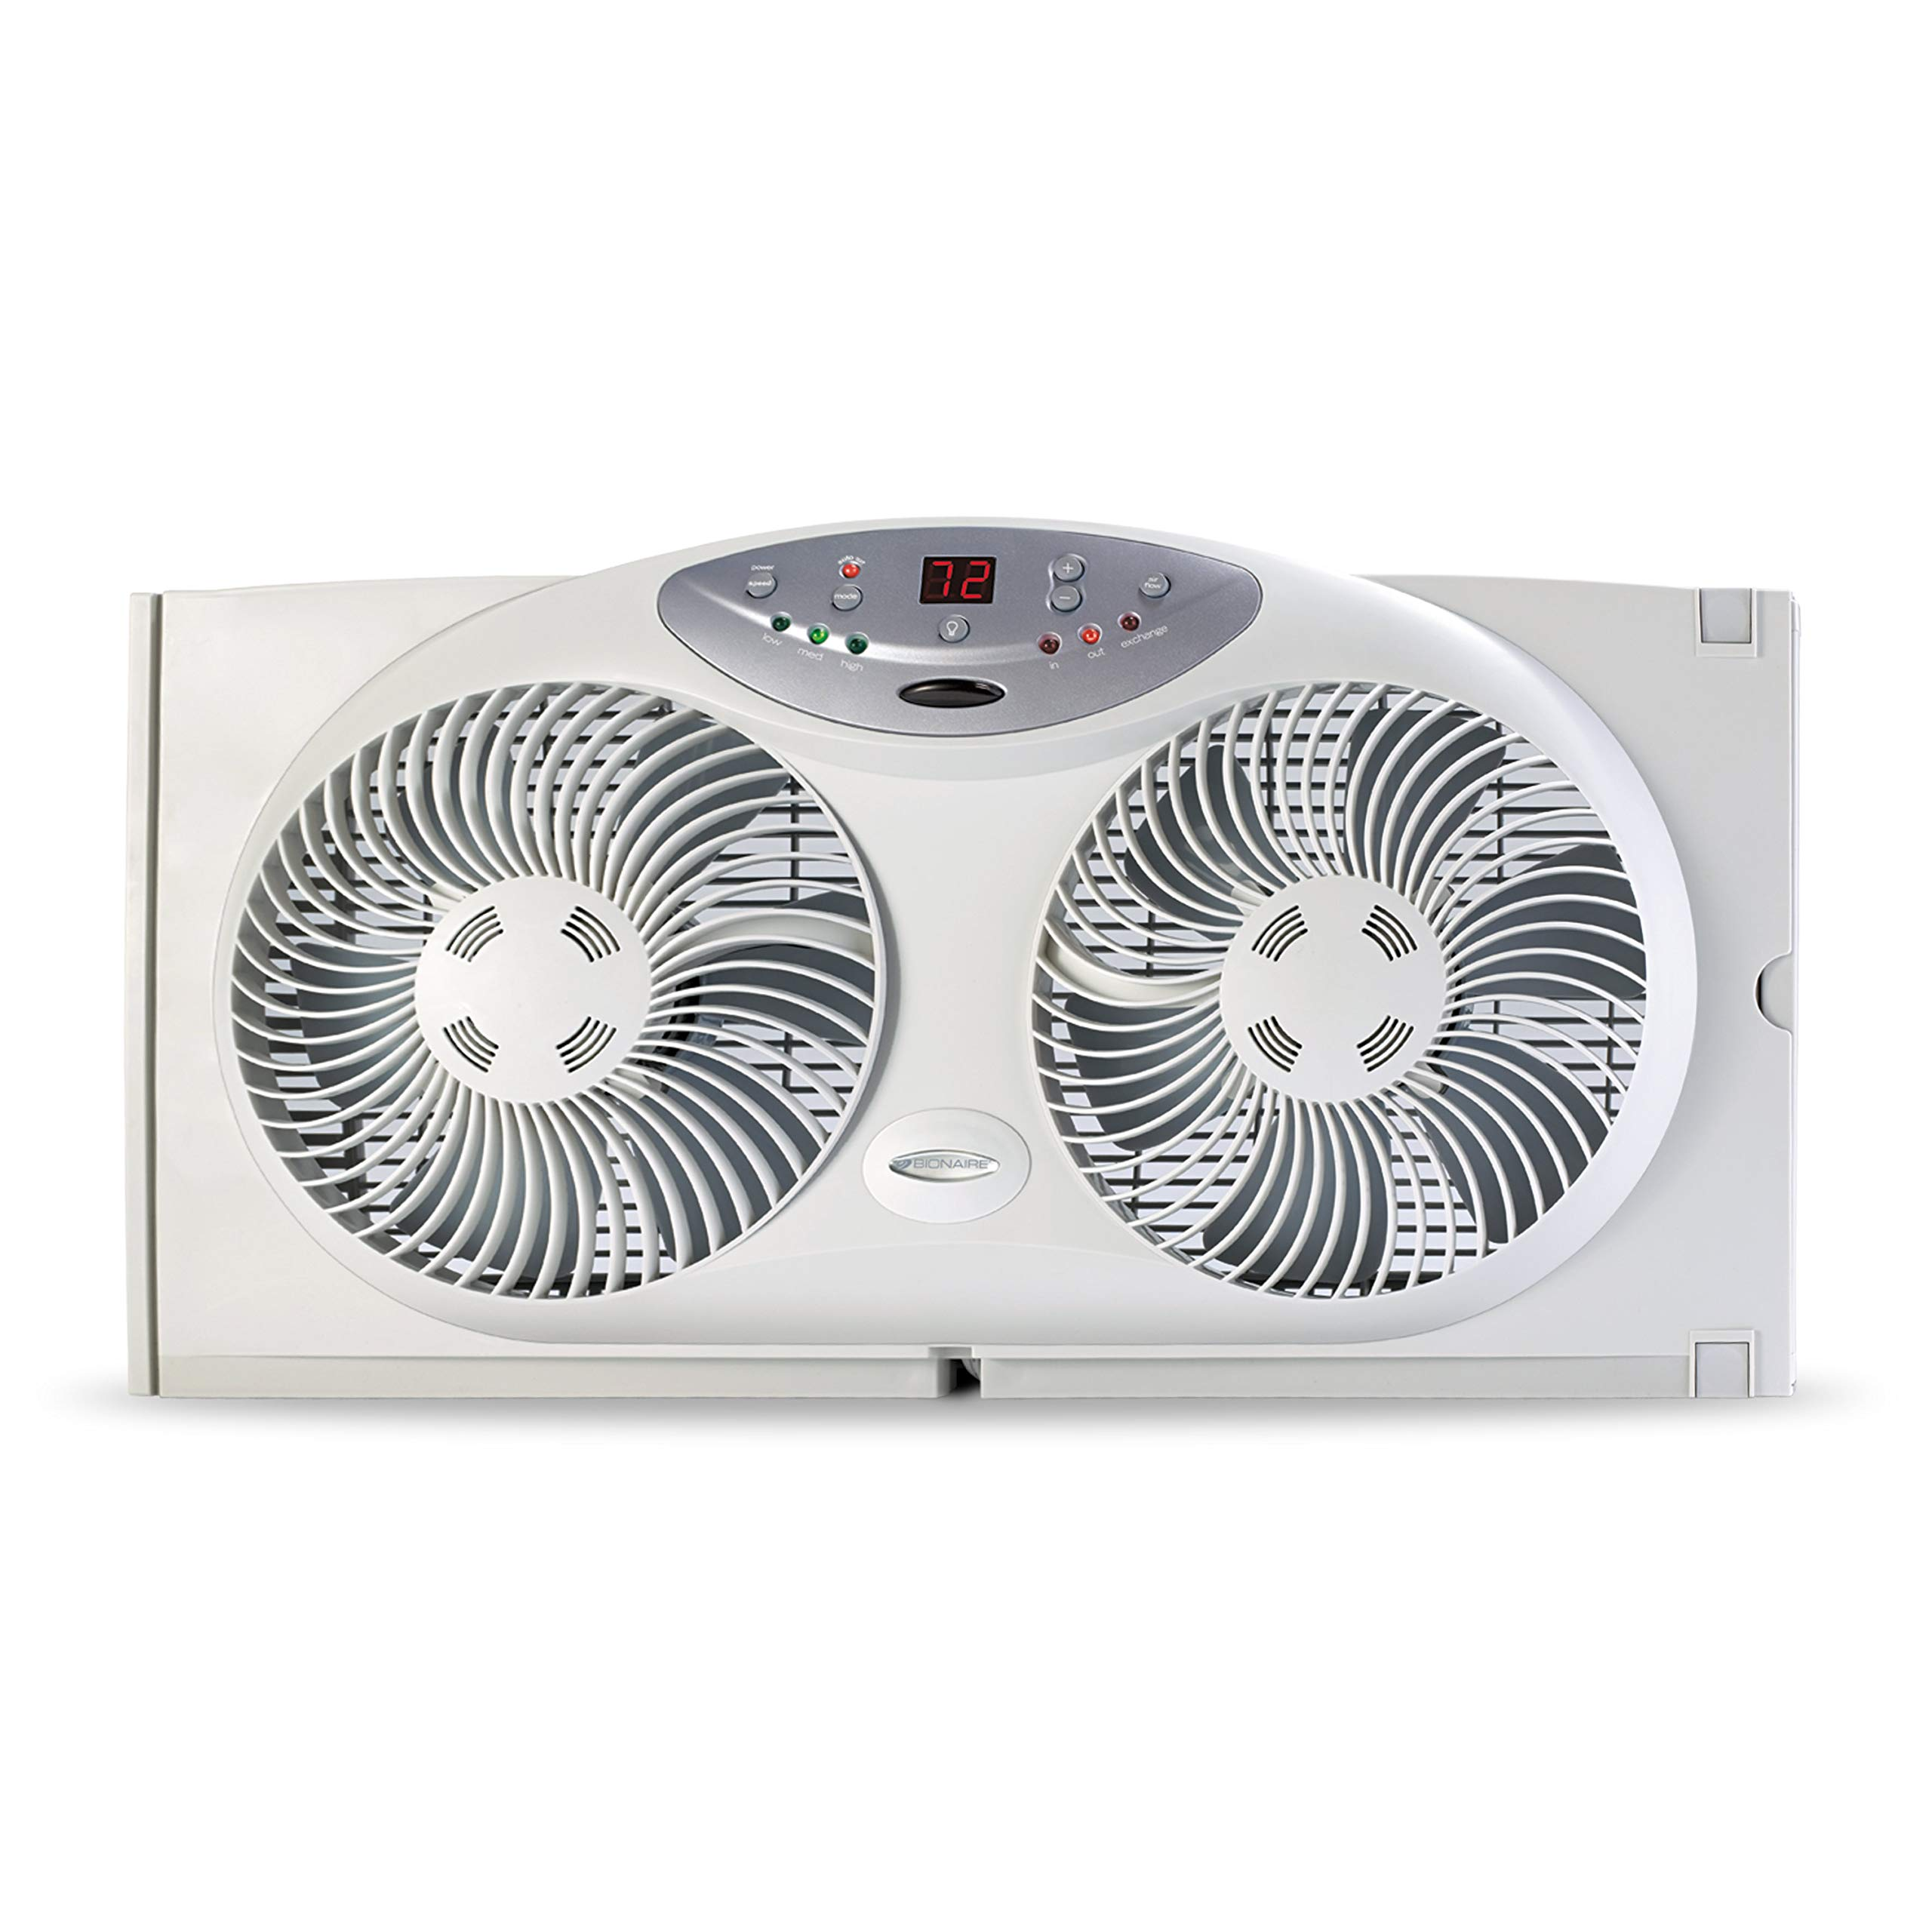 Bionaire Thin Window Fan with Manual Controls(BWF0502M-WM)